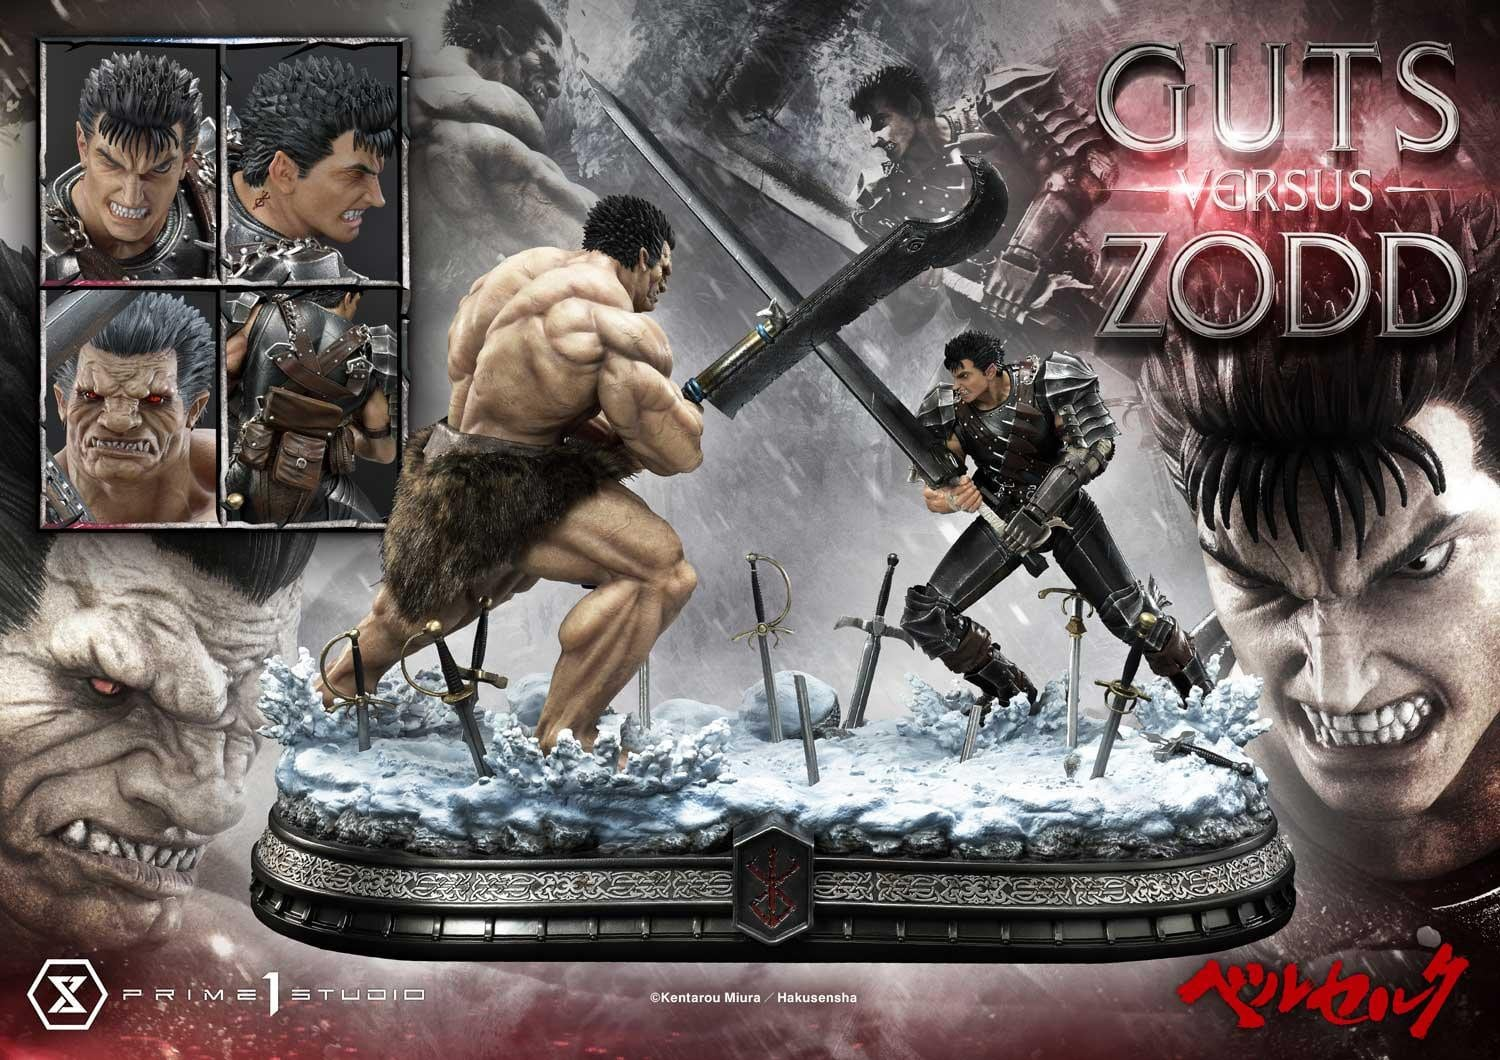 Prime 1 Studio Guts vs Zodd Standard Version Statue